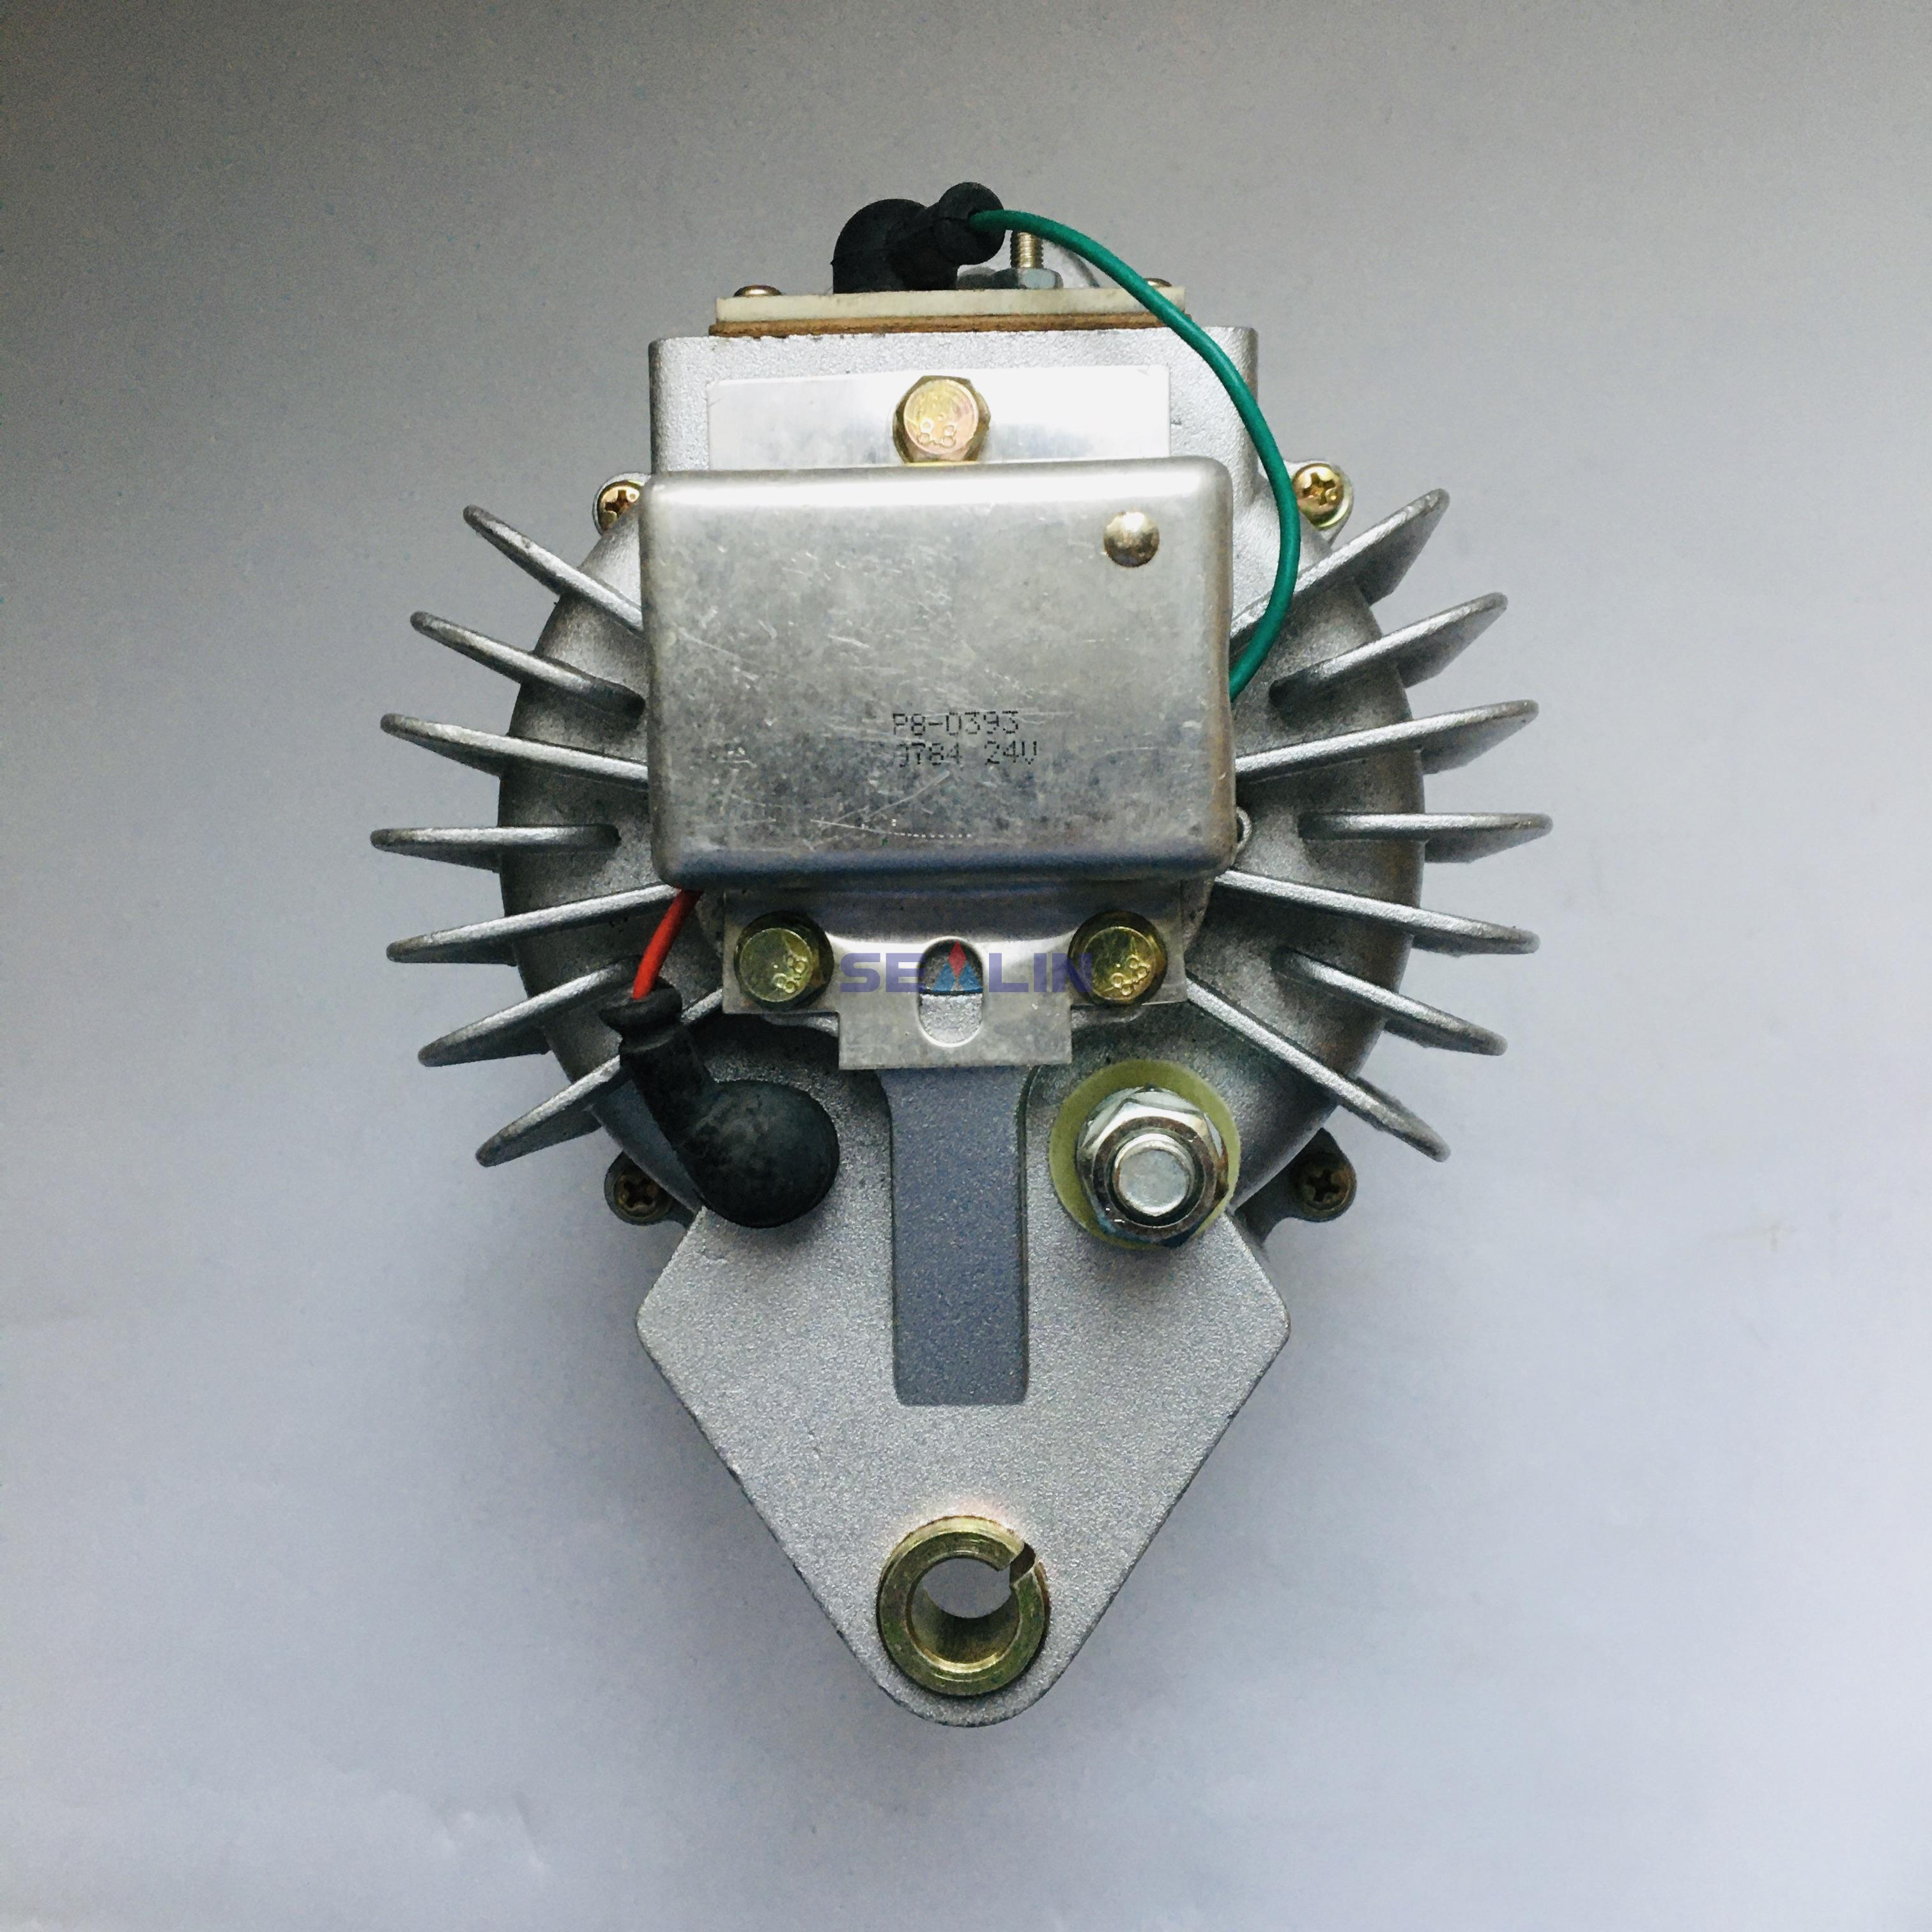 Alternator 7331N ANB6002 ANB6004 ANB7002 ANB7003 ANB7004 A44440 A44794 A47434 R34730 ANB6002 ANB6004 ANB7002 for Case Tractor